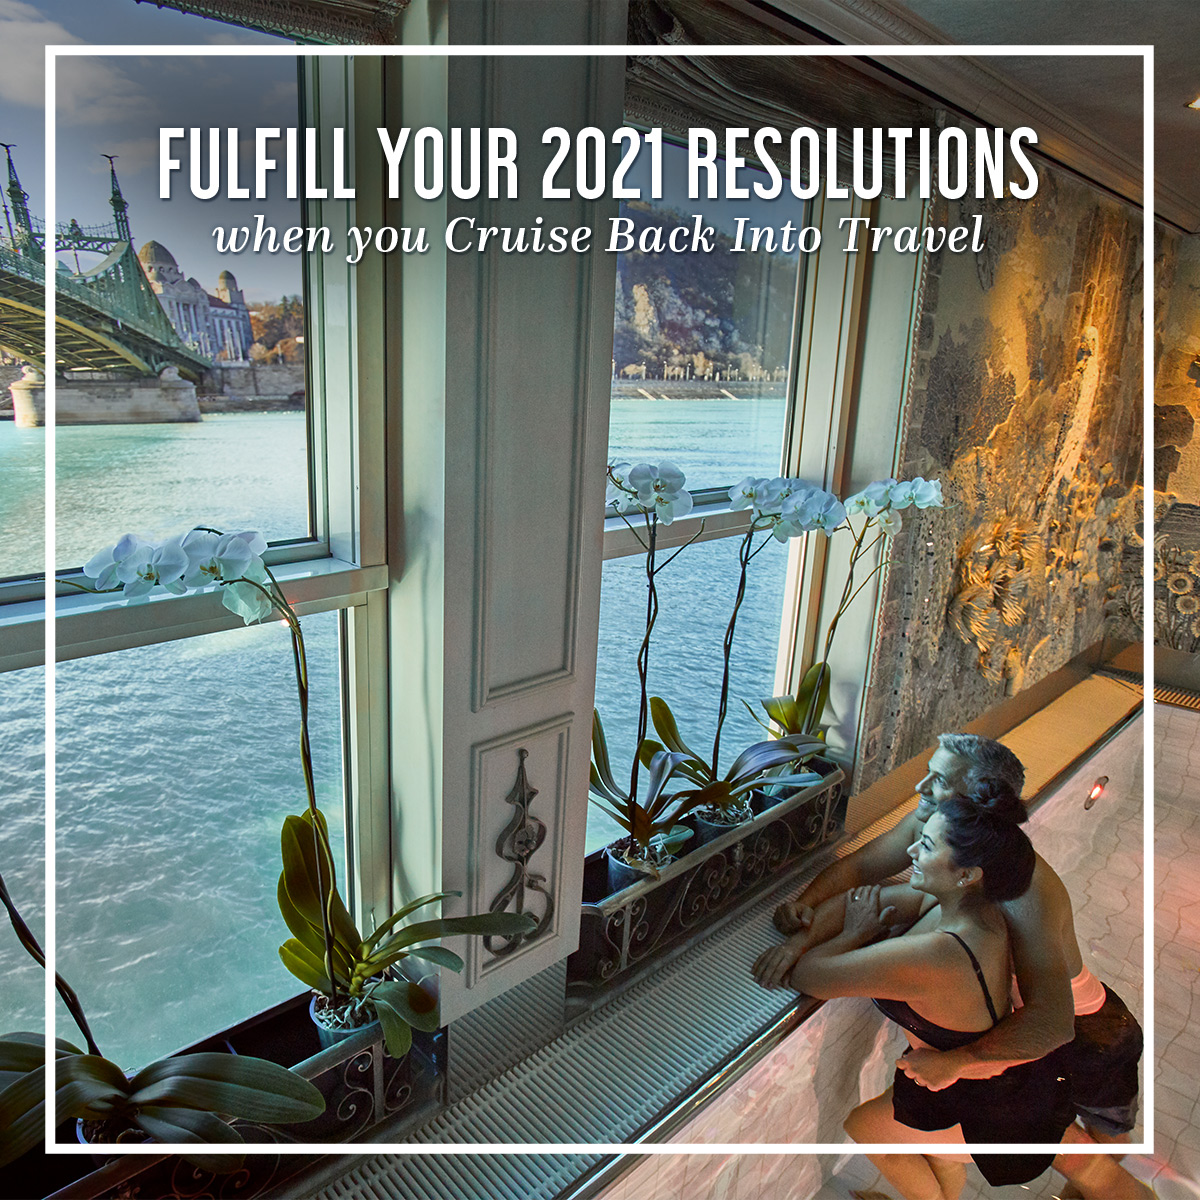 Fulfill your 2021 resolutions when you Cruise Back Into Travel